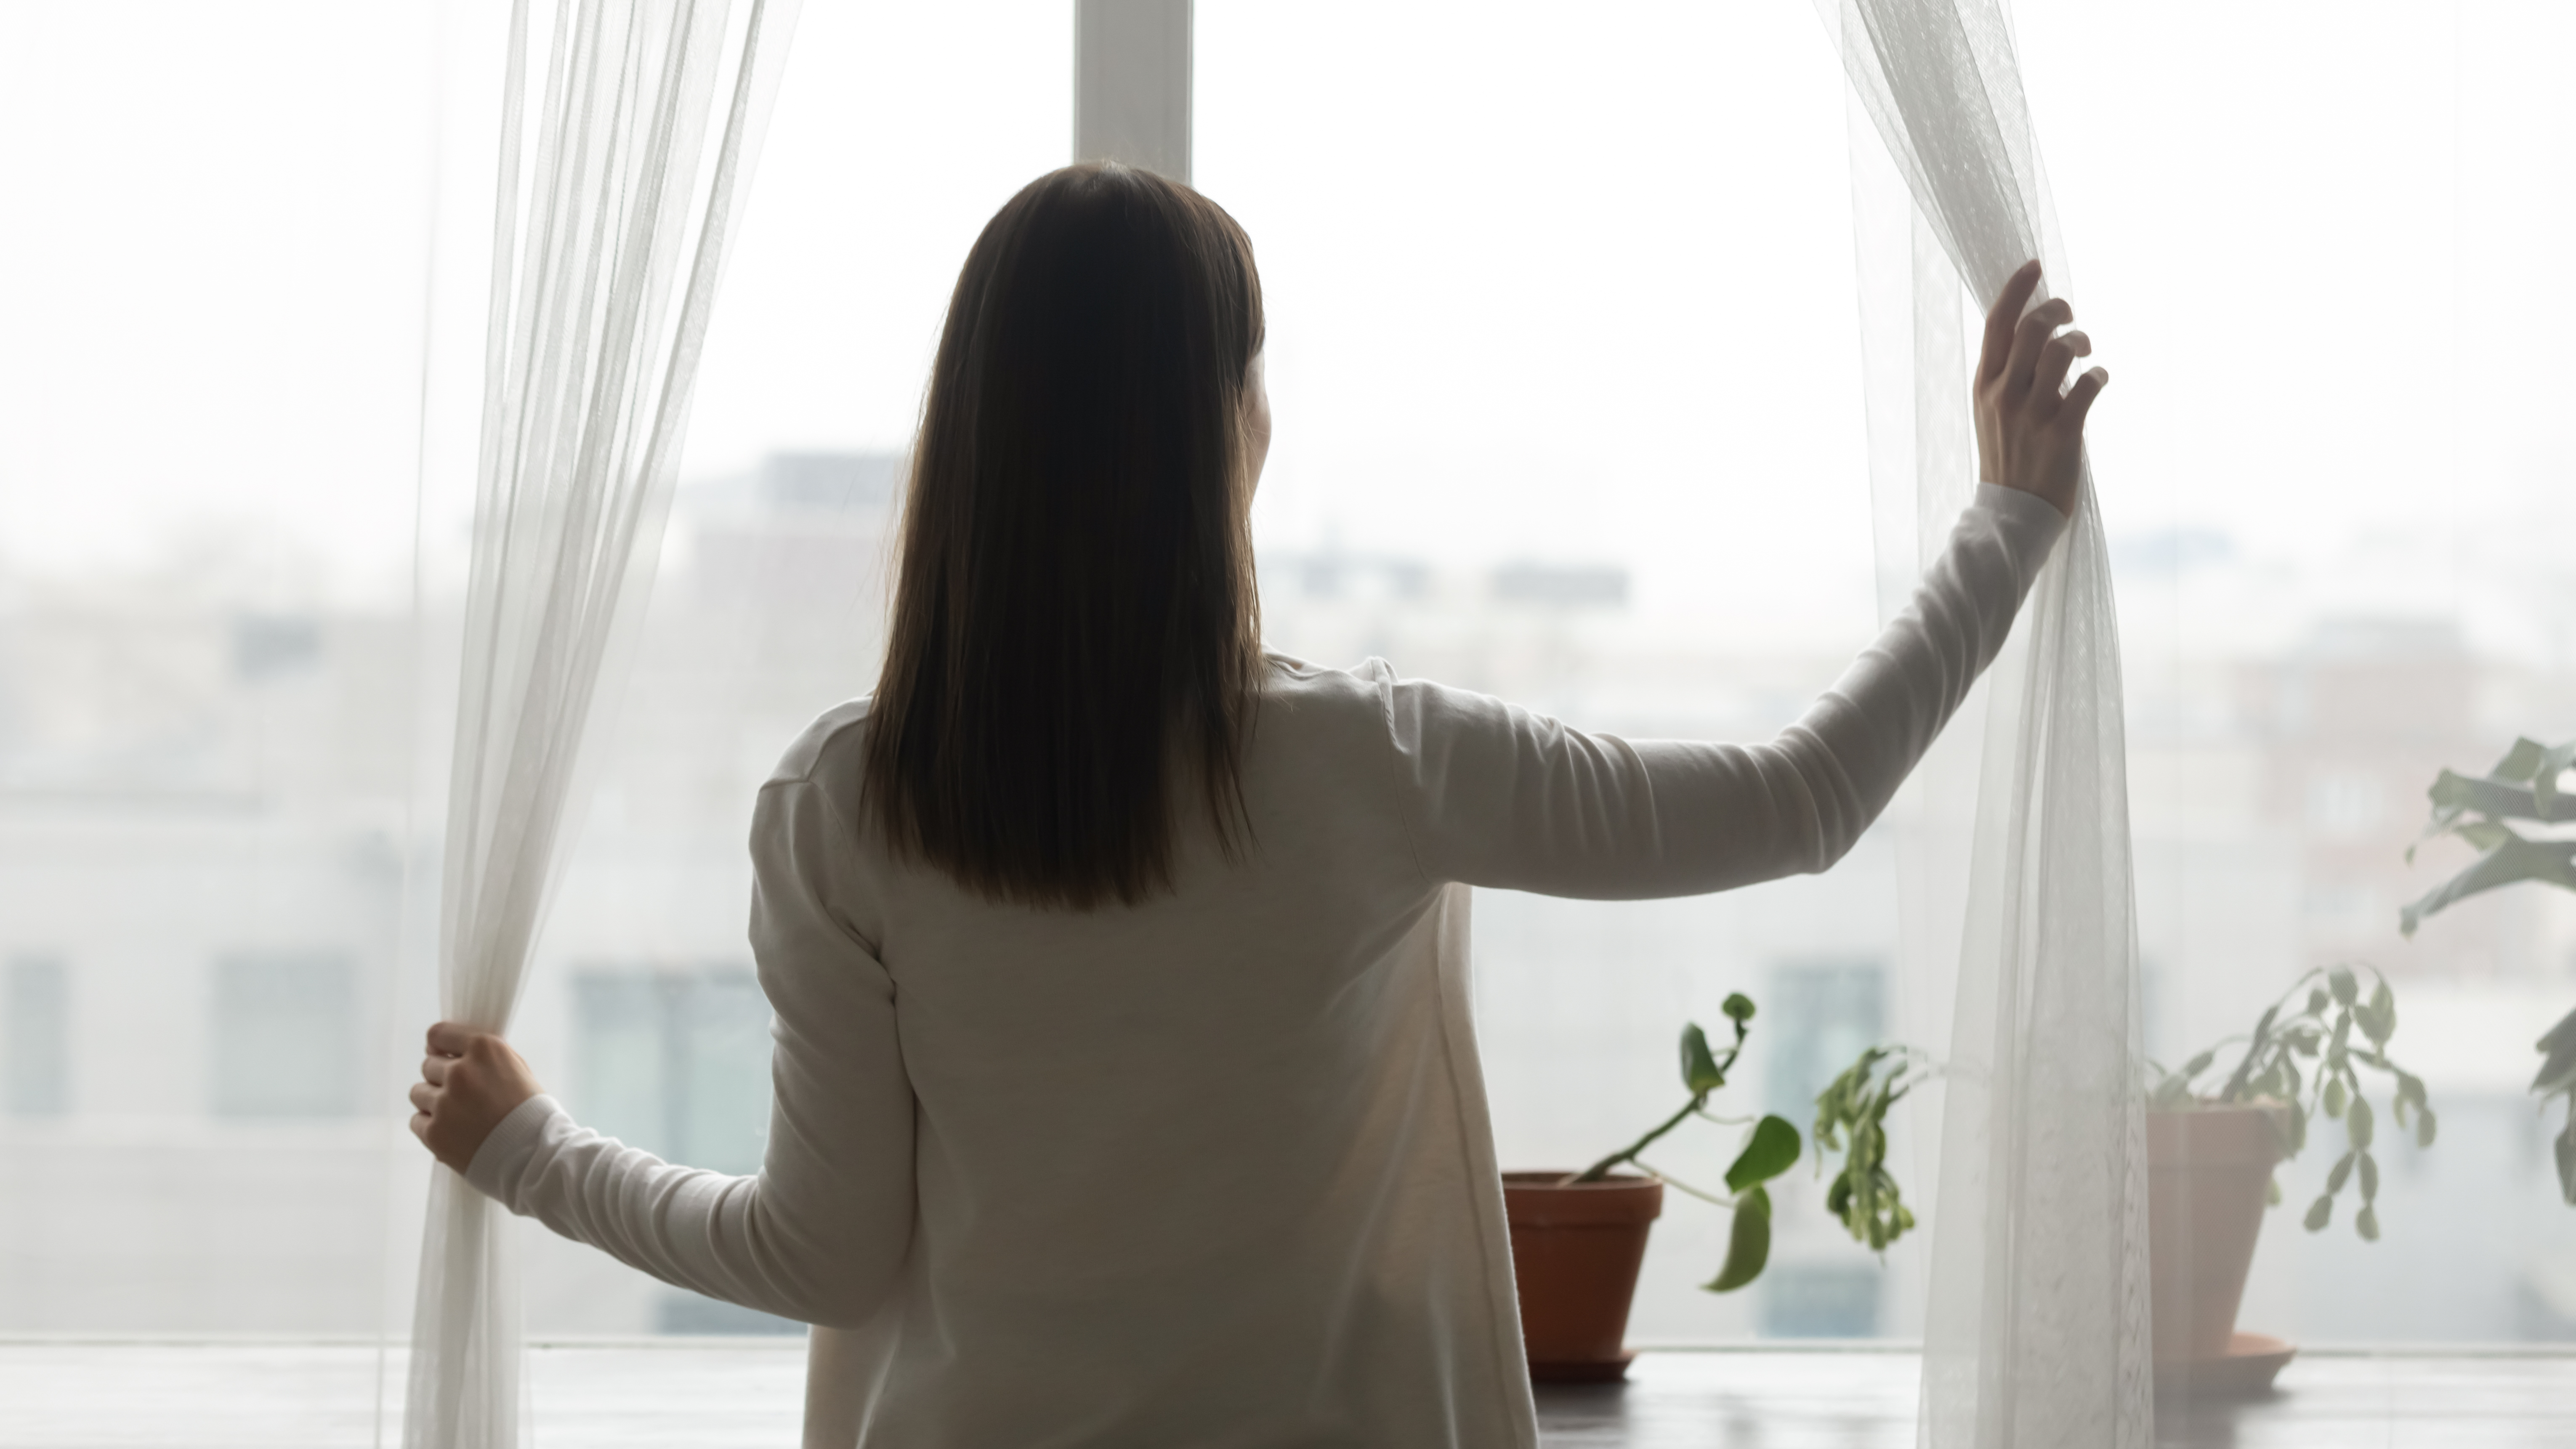 Rear back view young happy woman opening curtains, welcoming new day alone at home. Millennial dreamy brunette girl looking out of window, admiring panoramic city view or watching weather outside.